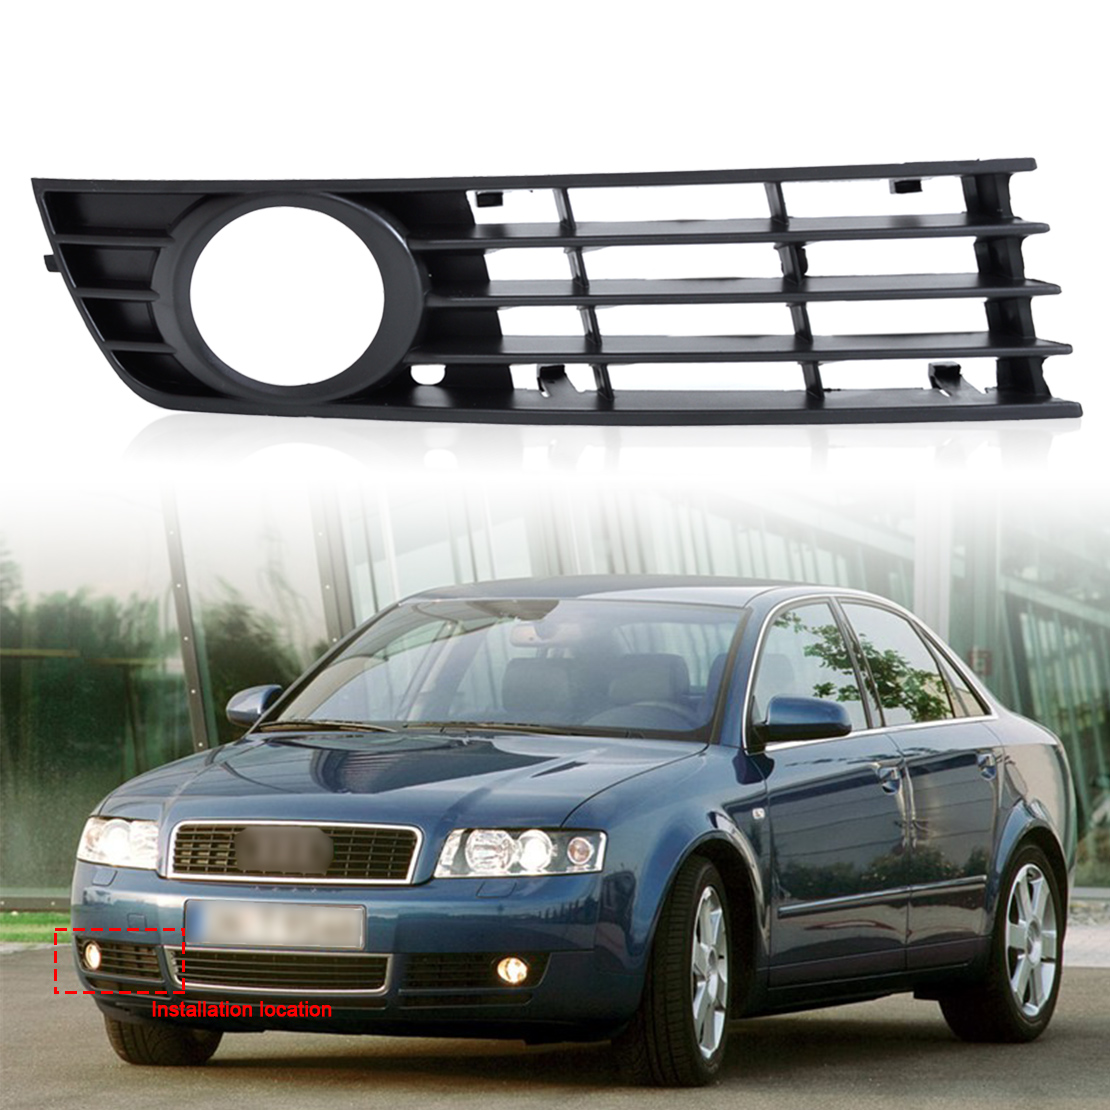 Audi A4 2002 Price: Beler ABS Plastic Black Grille Front Right Insert Bumper